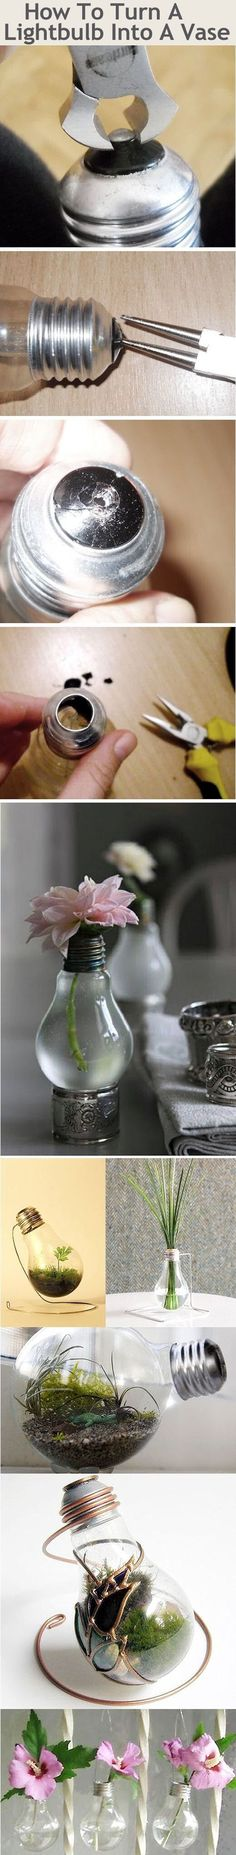 How To Turn A Light Bulb Into A Vase